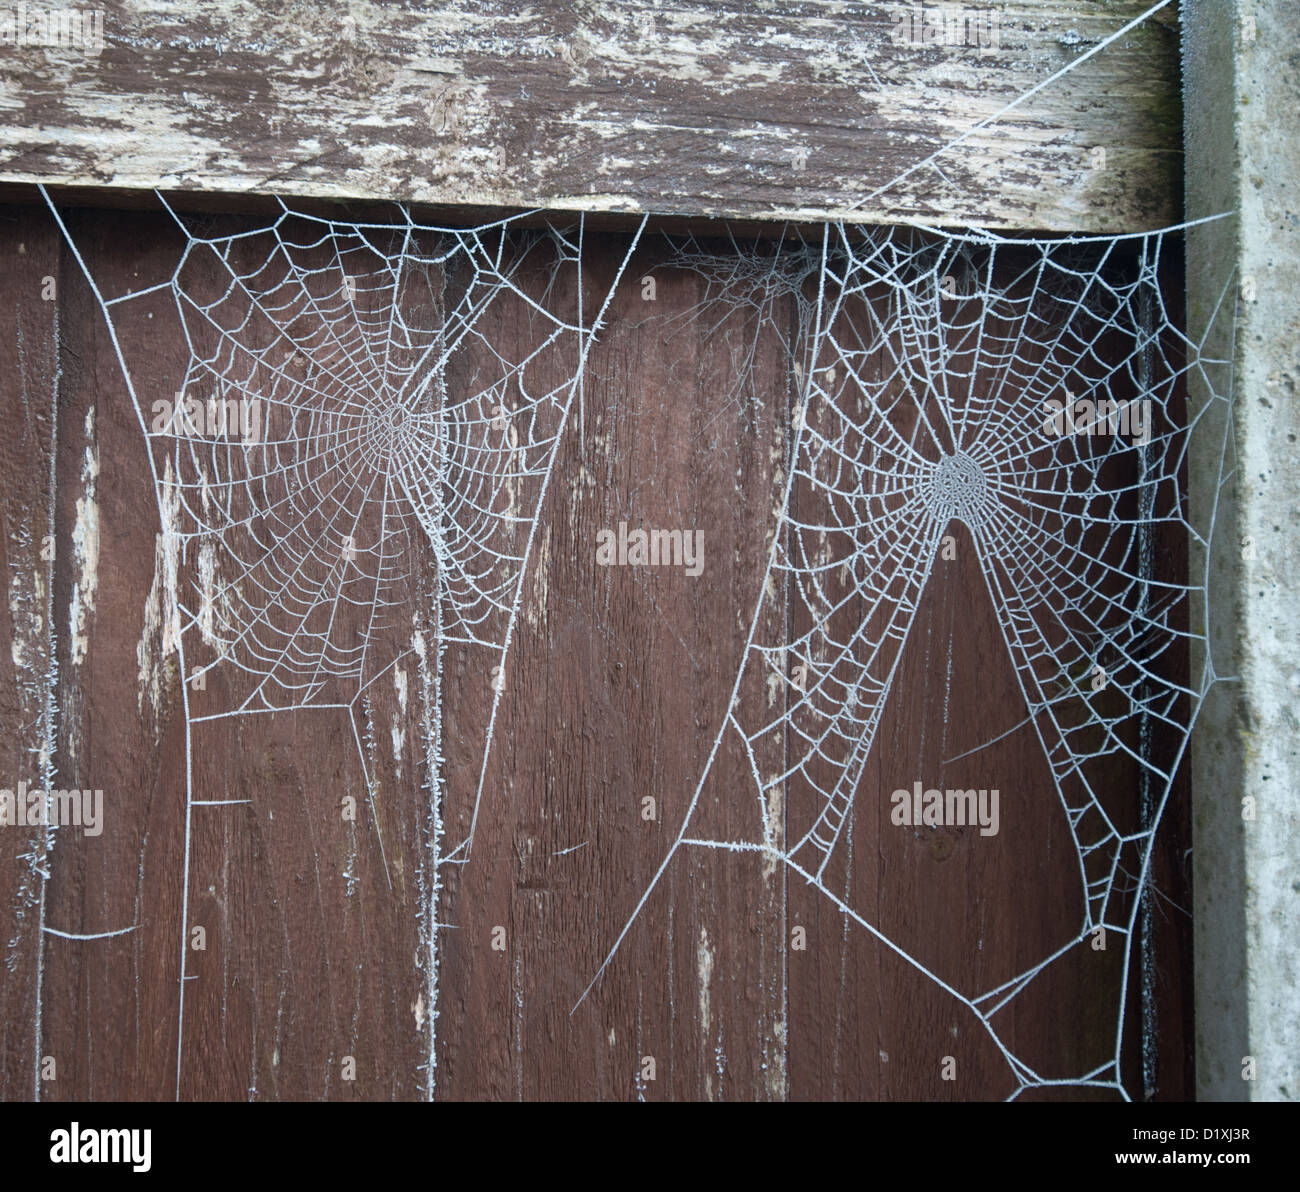 Frost-covered spiders' webs on a fence - Stock Image